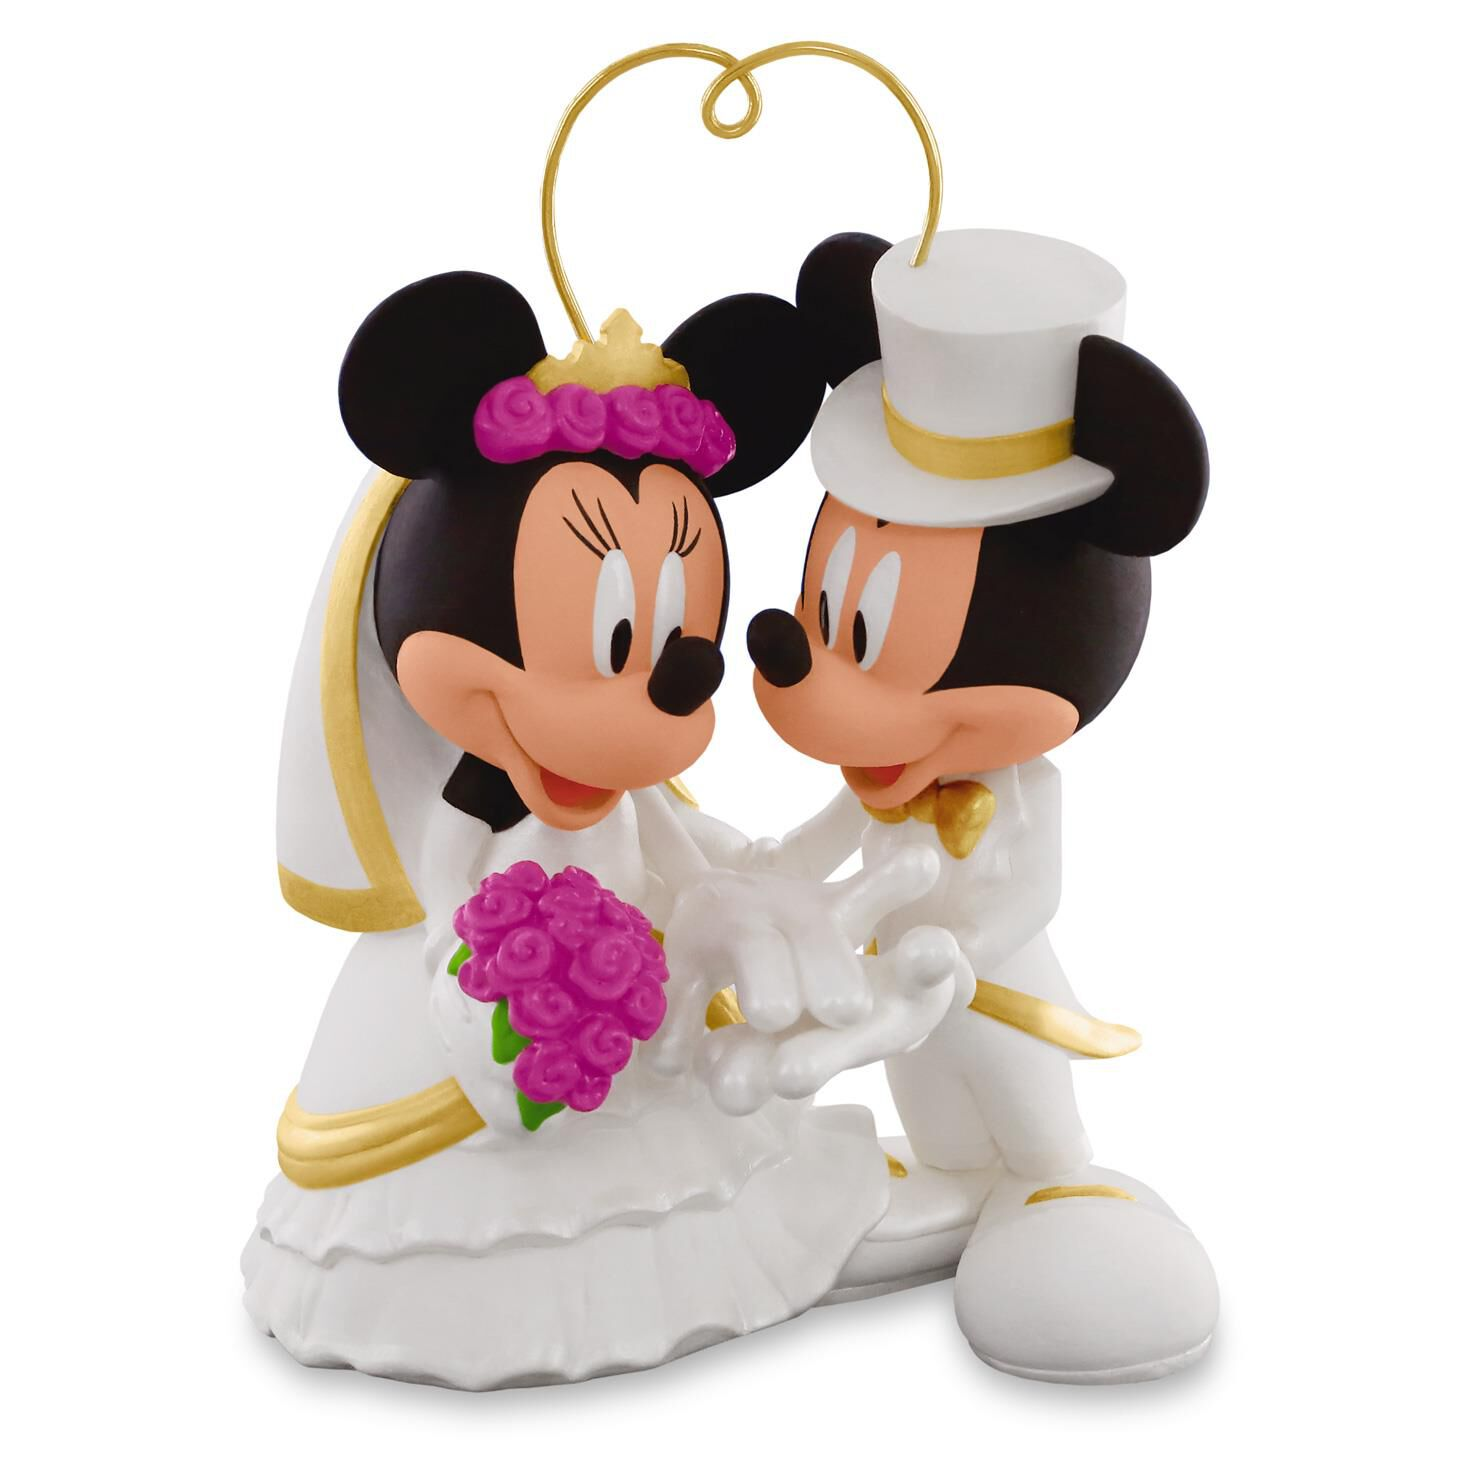 Wedding ornaments -  I Do Times Two Mickey And Minnie Porcelain Wedding Ornament Keepsake Ornaments Hallmark